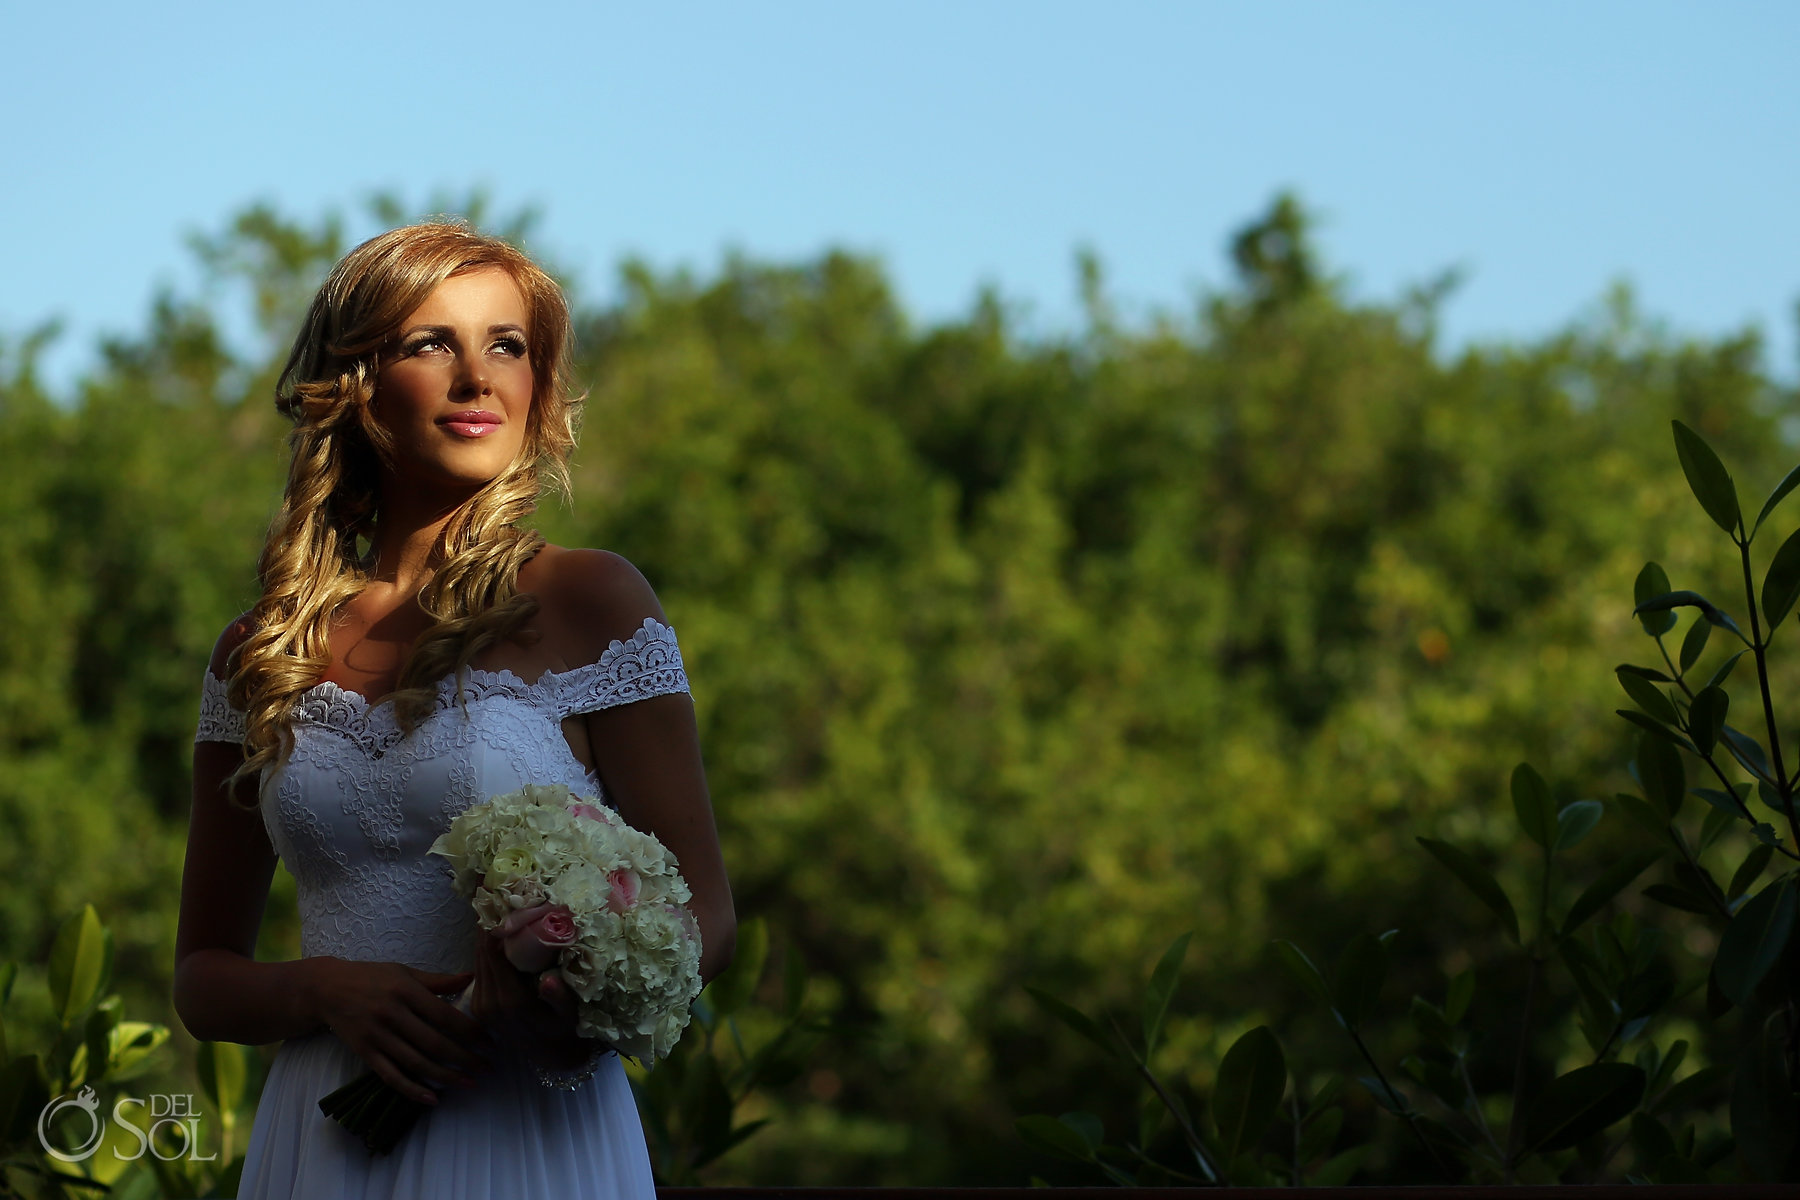 Beautiful Bridal Portrait at mangroves in the Best elopement location Mexico